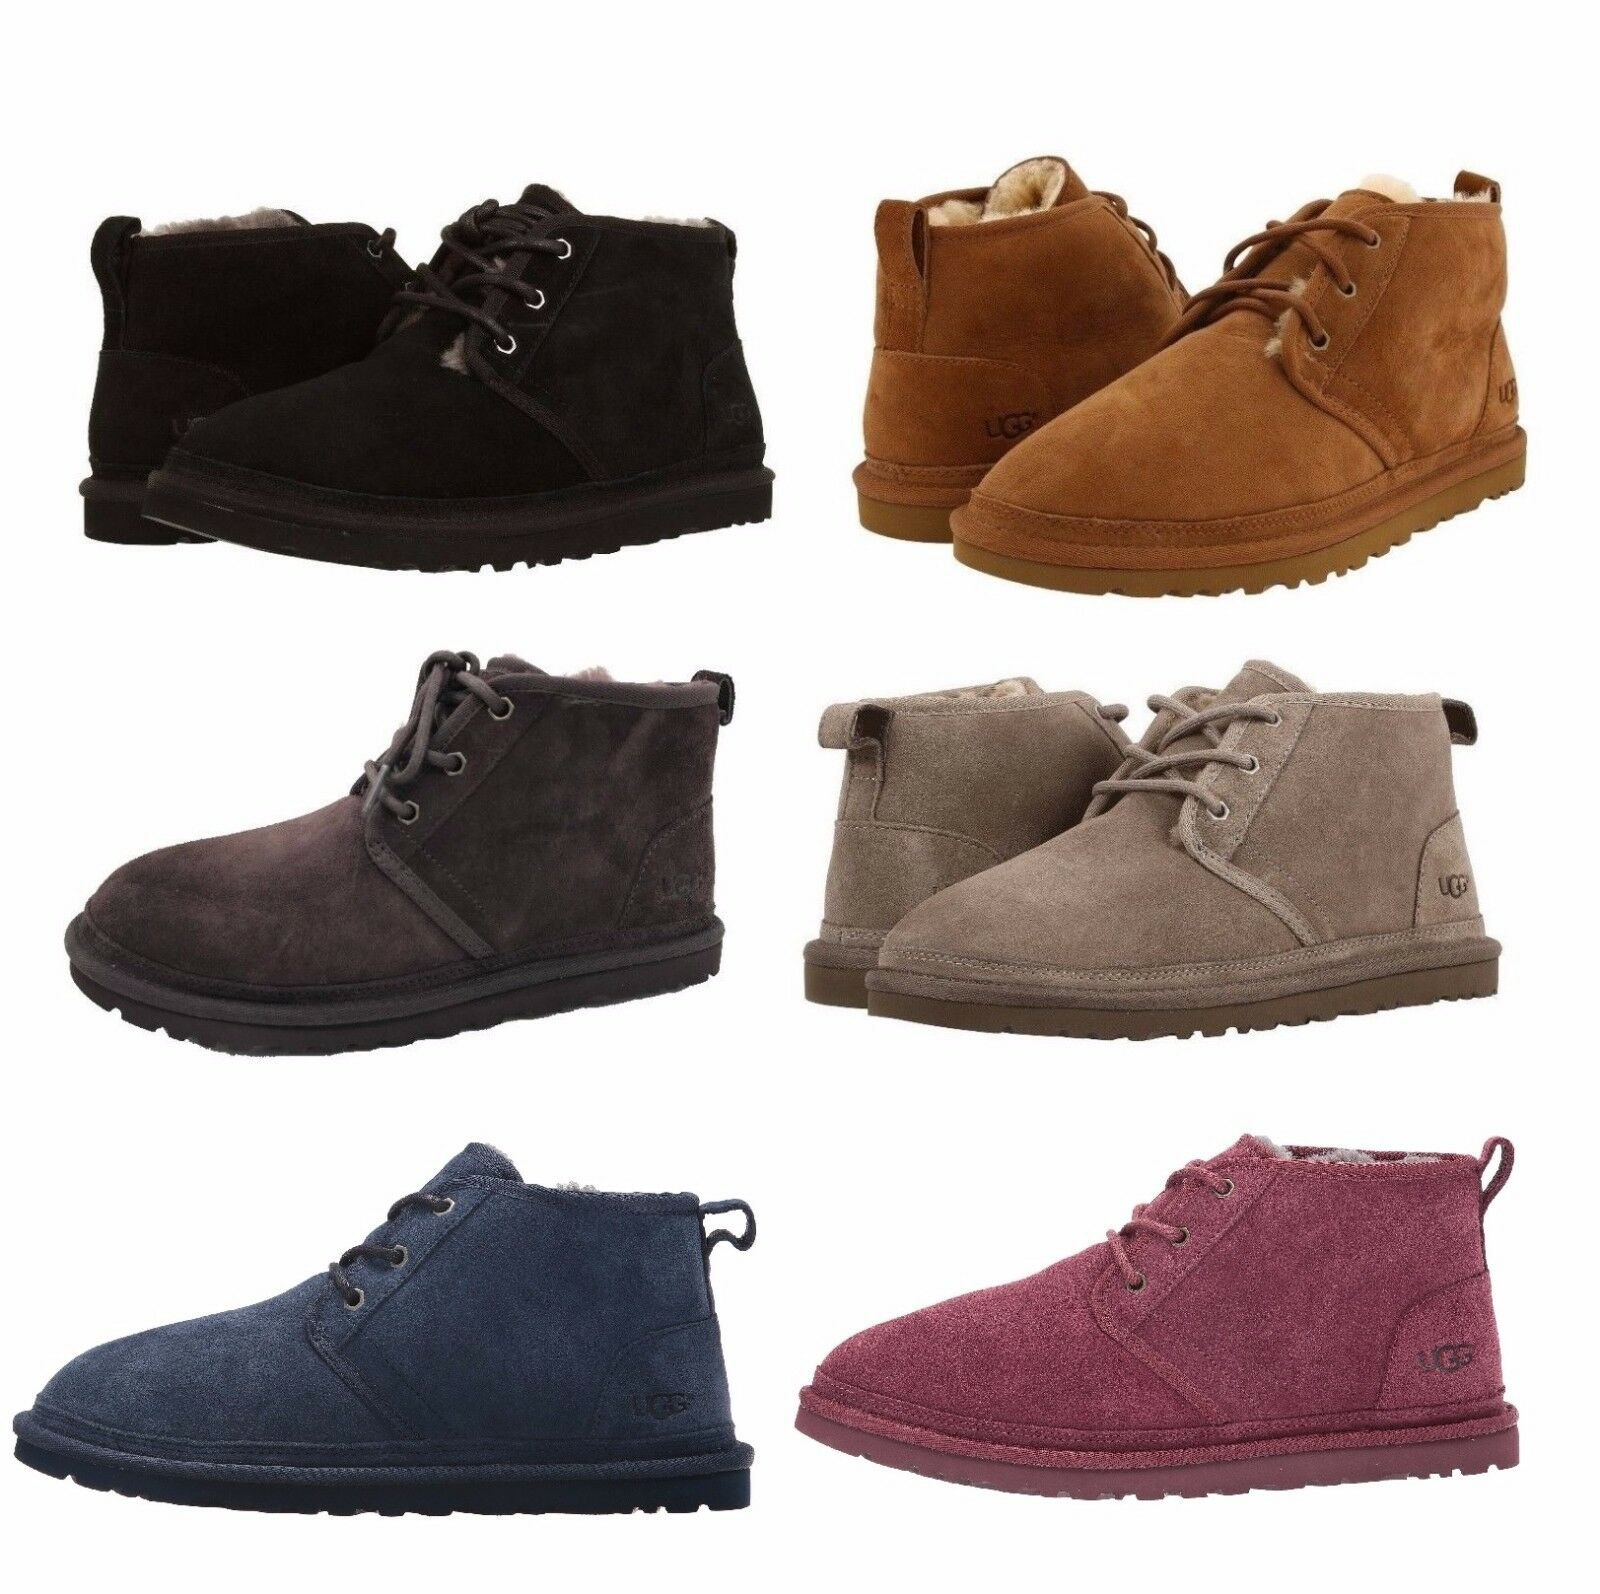 UGG Men's Neumel Chukka  Boots Casual Fashion Shoes Suede Black Chestnut 3236